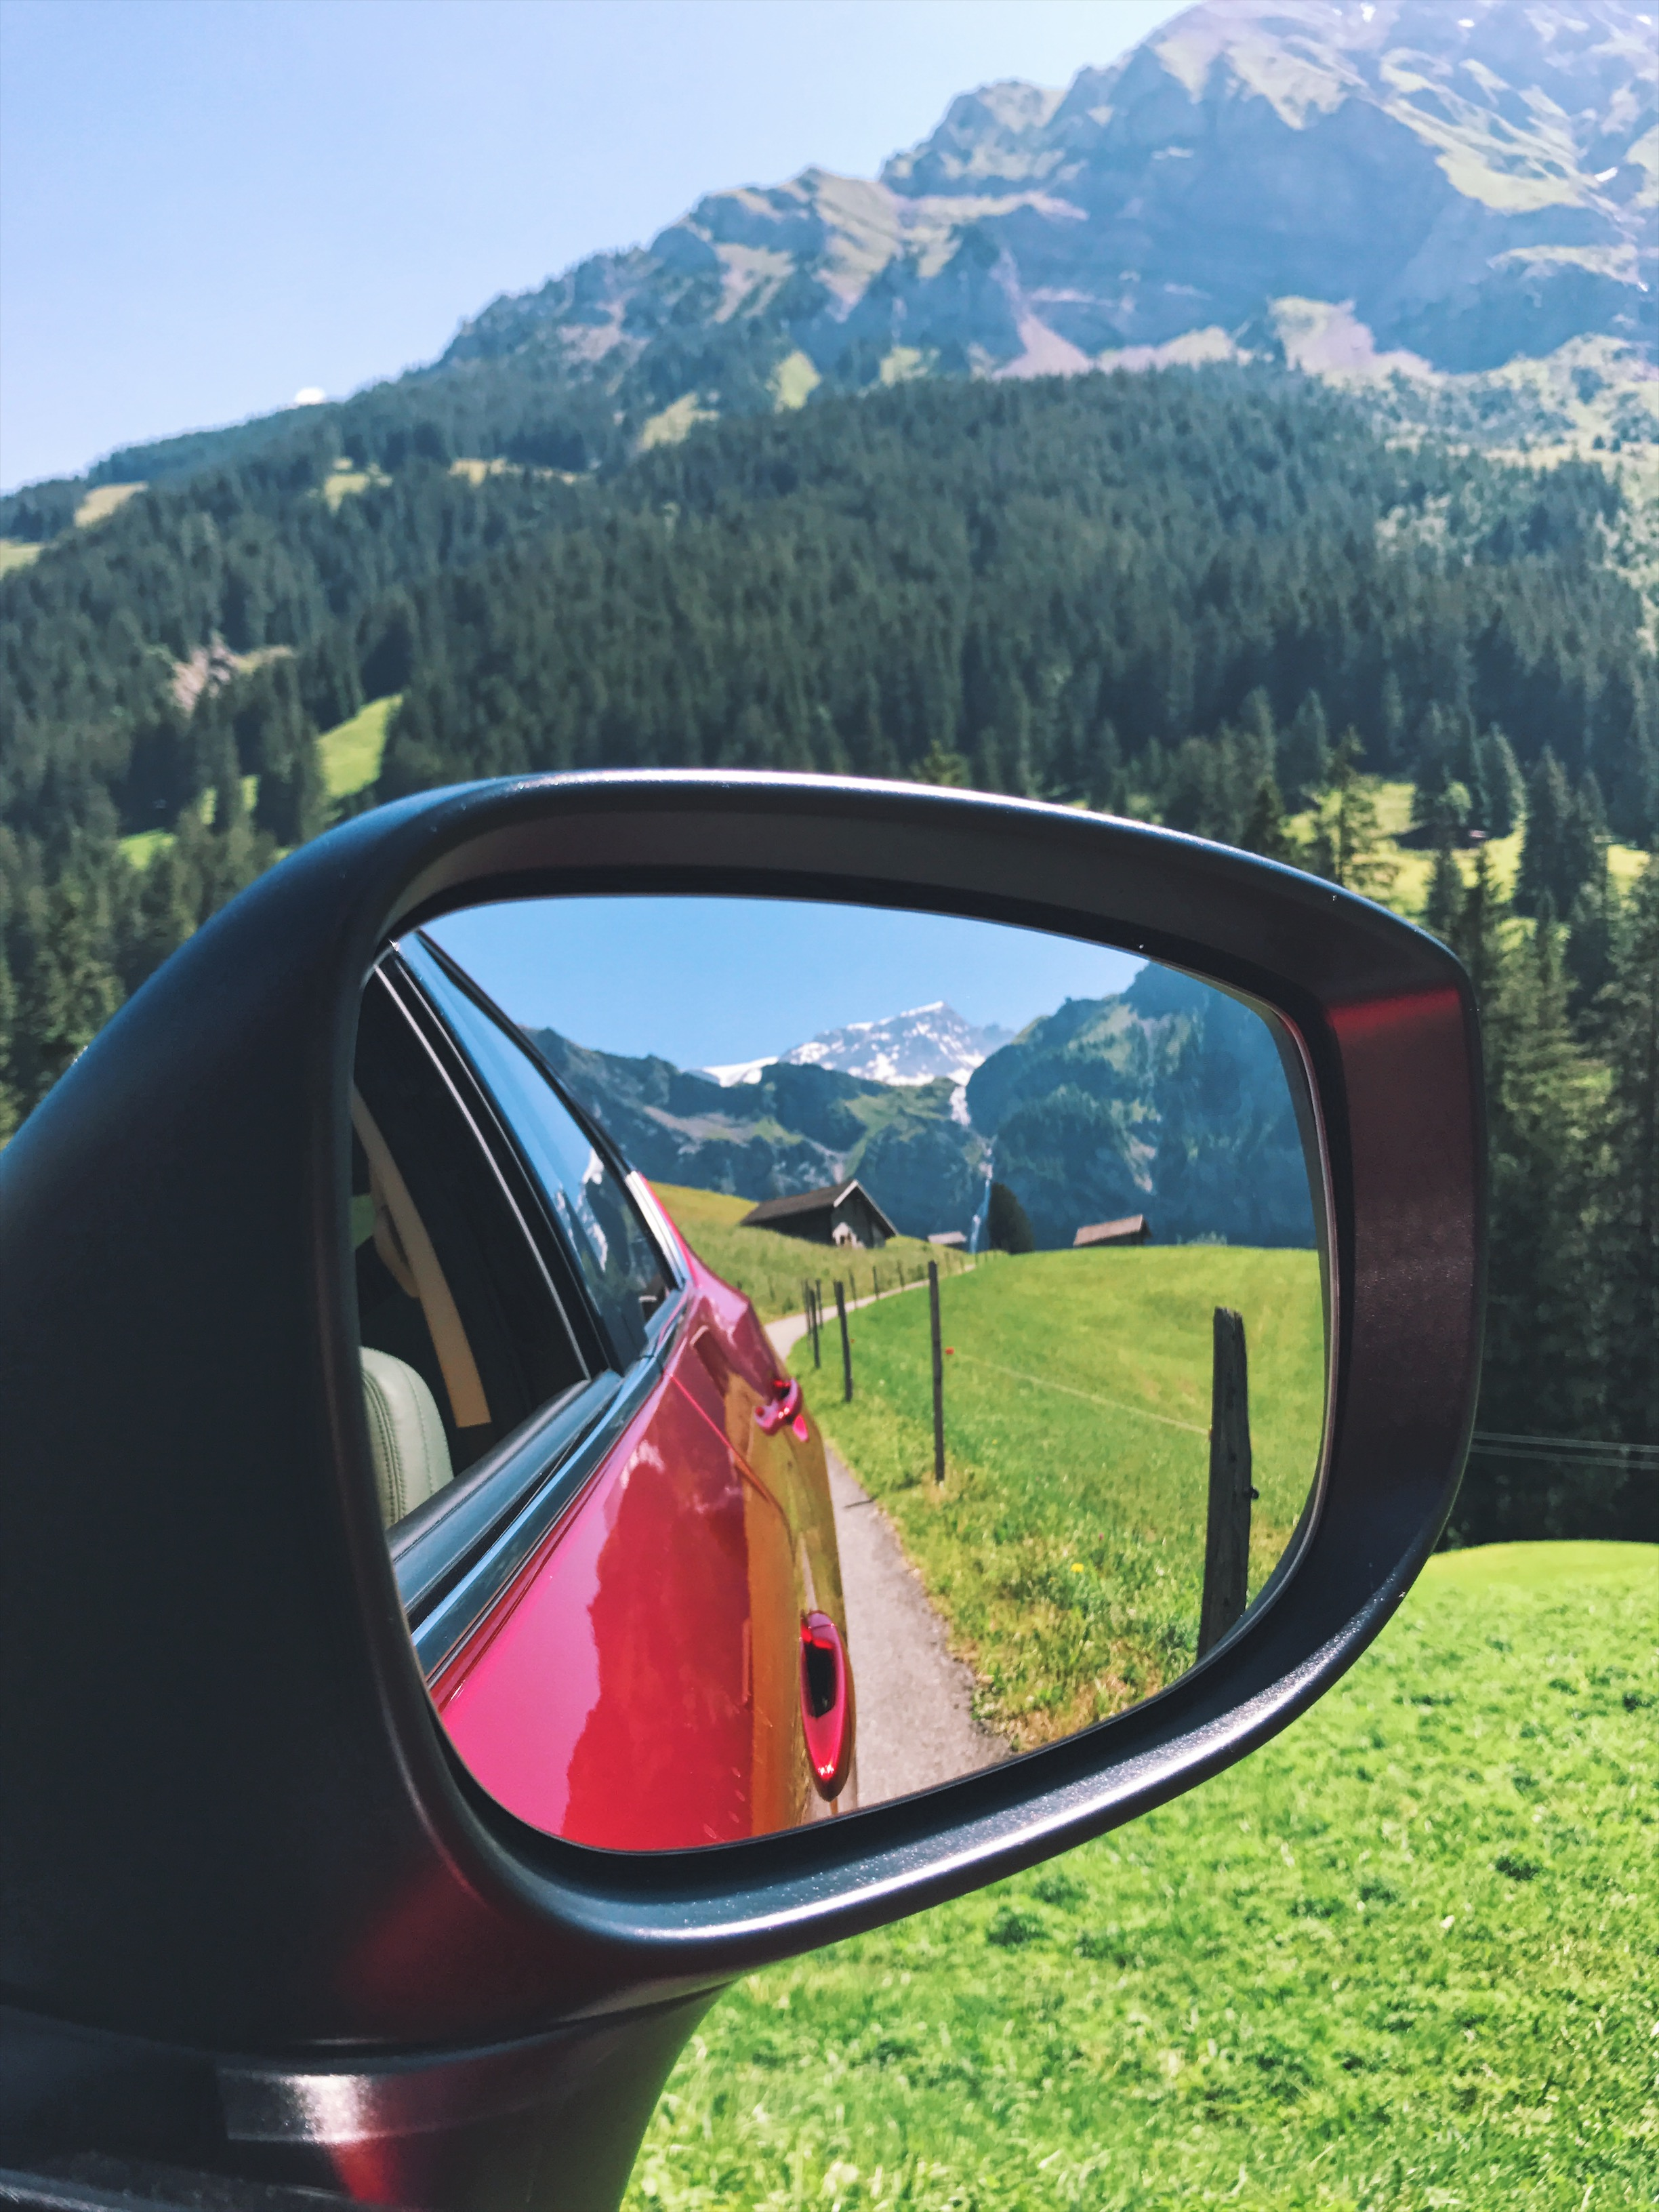 Views on the road trip through Switzerland in the Alps